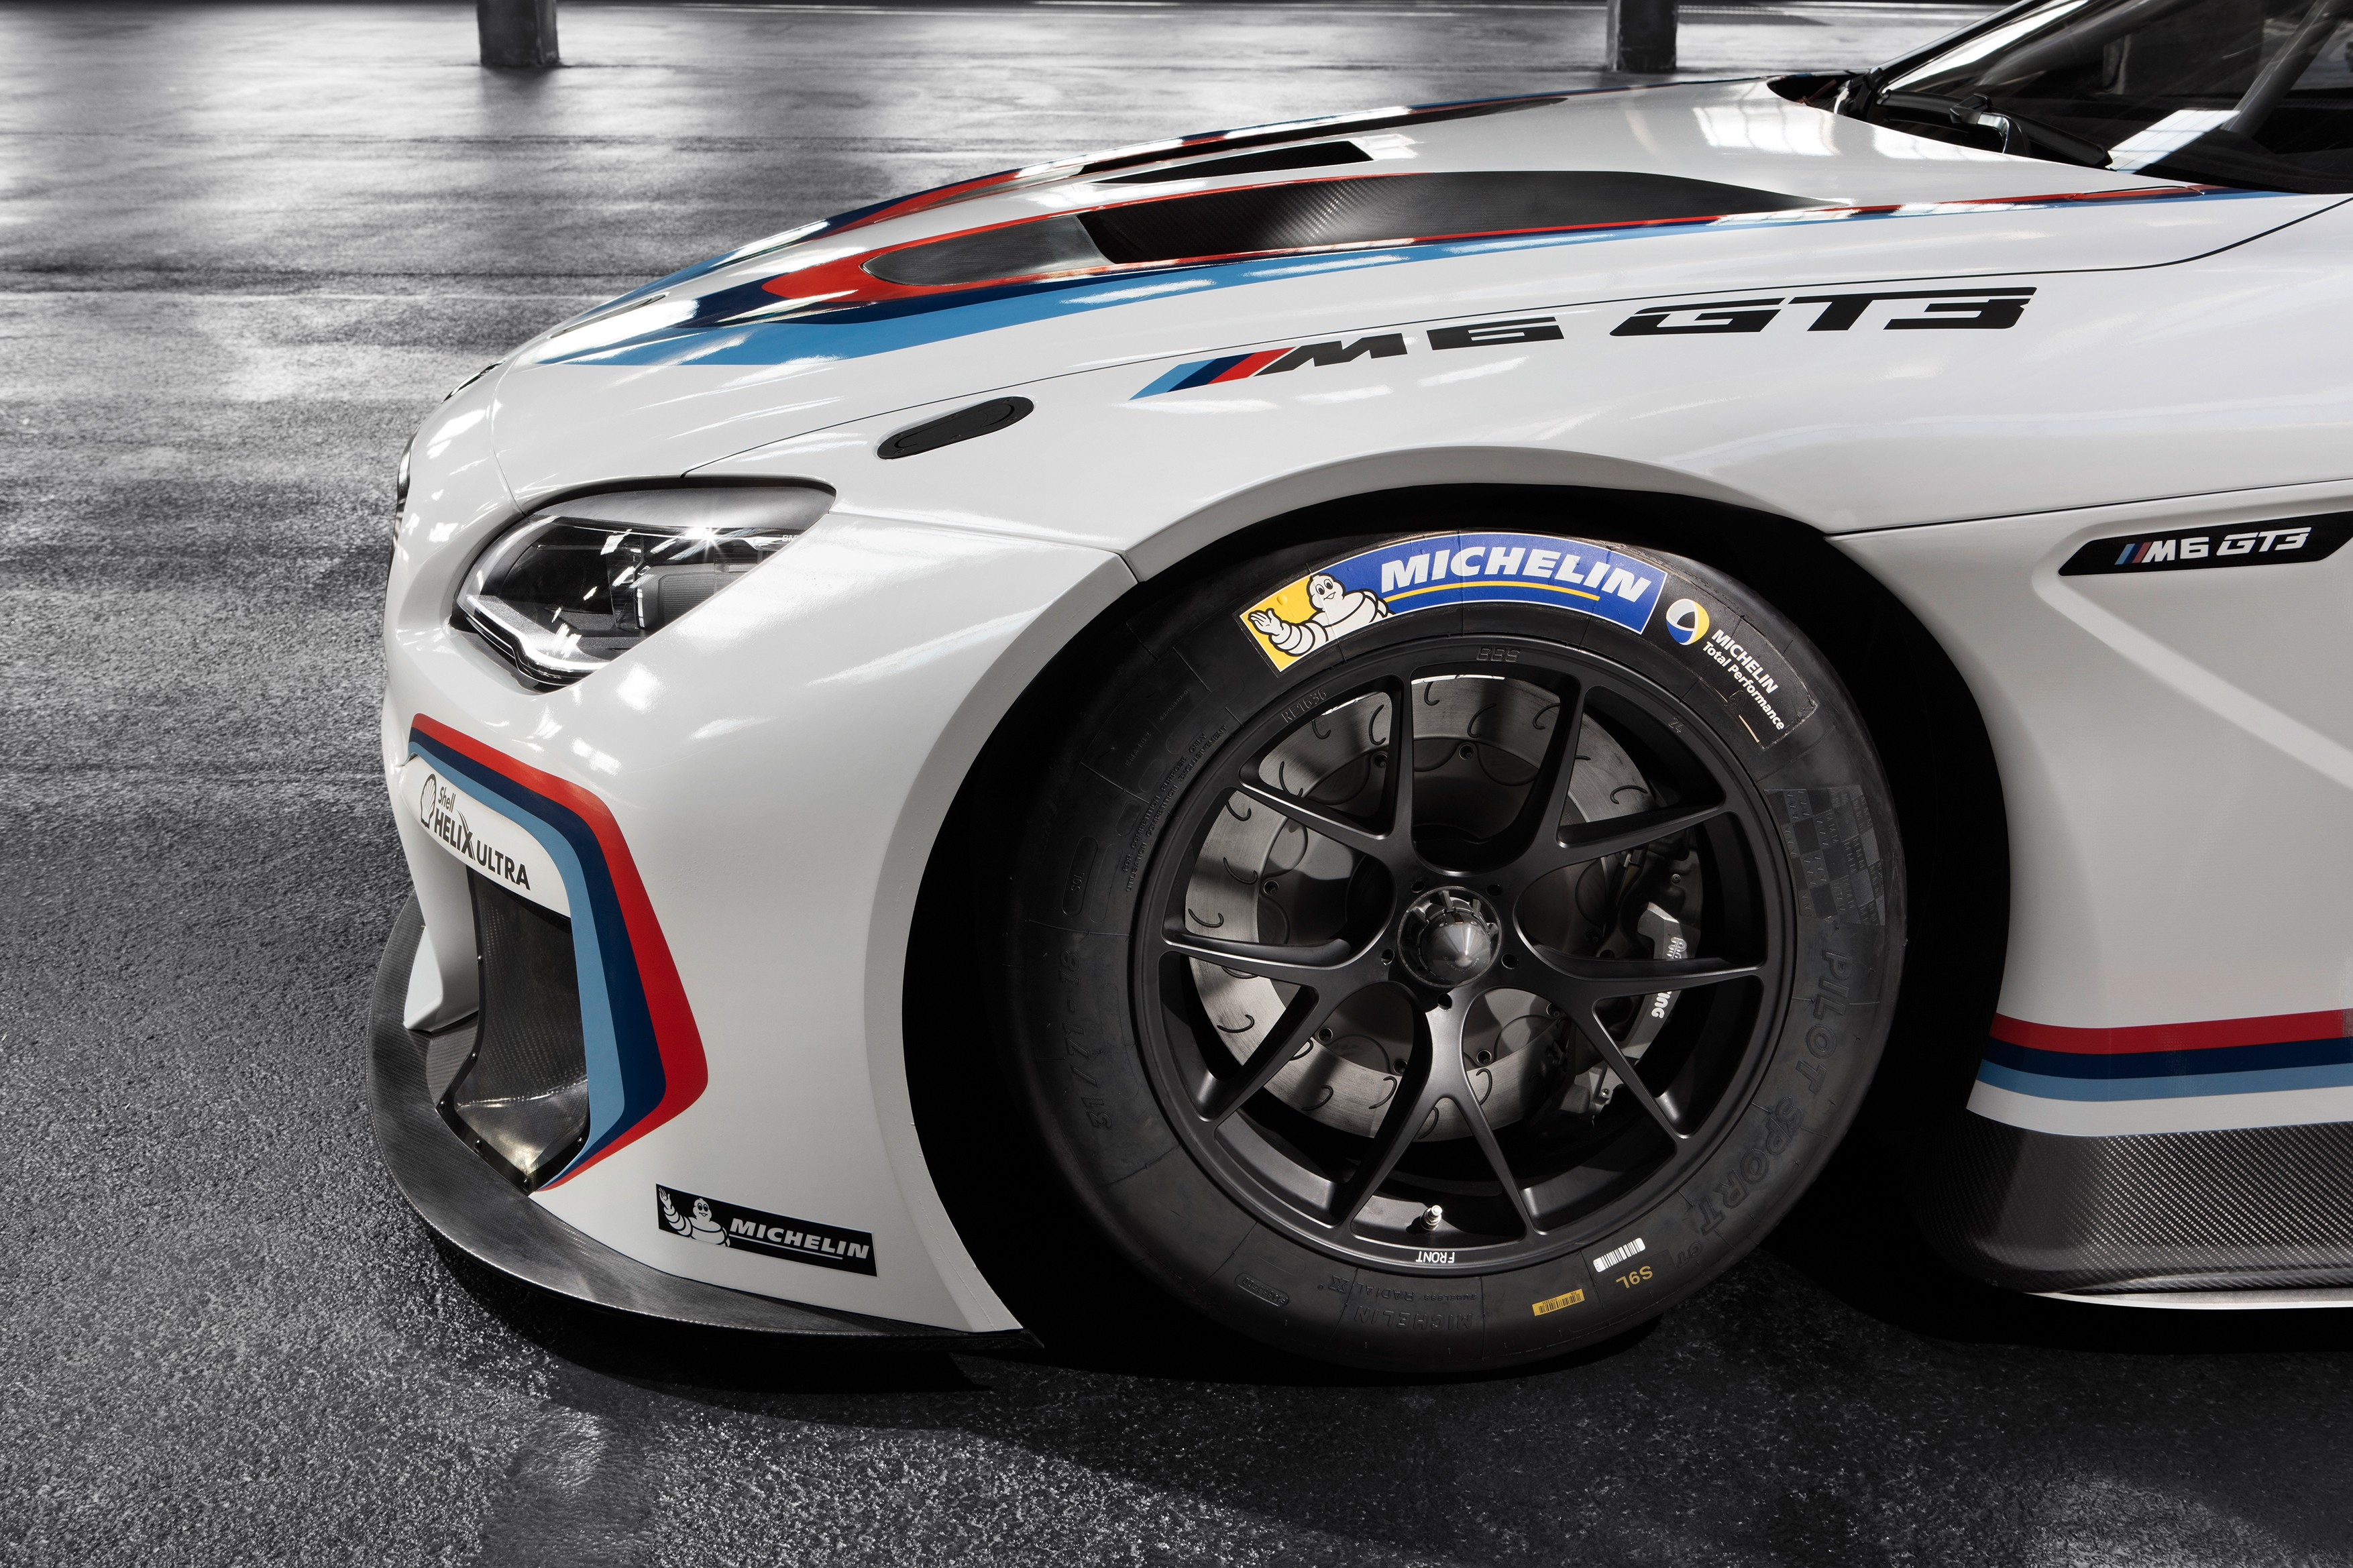 Showstopper Bmw M6 Gt3 Fully Revealed In Frankfurt